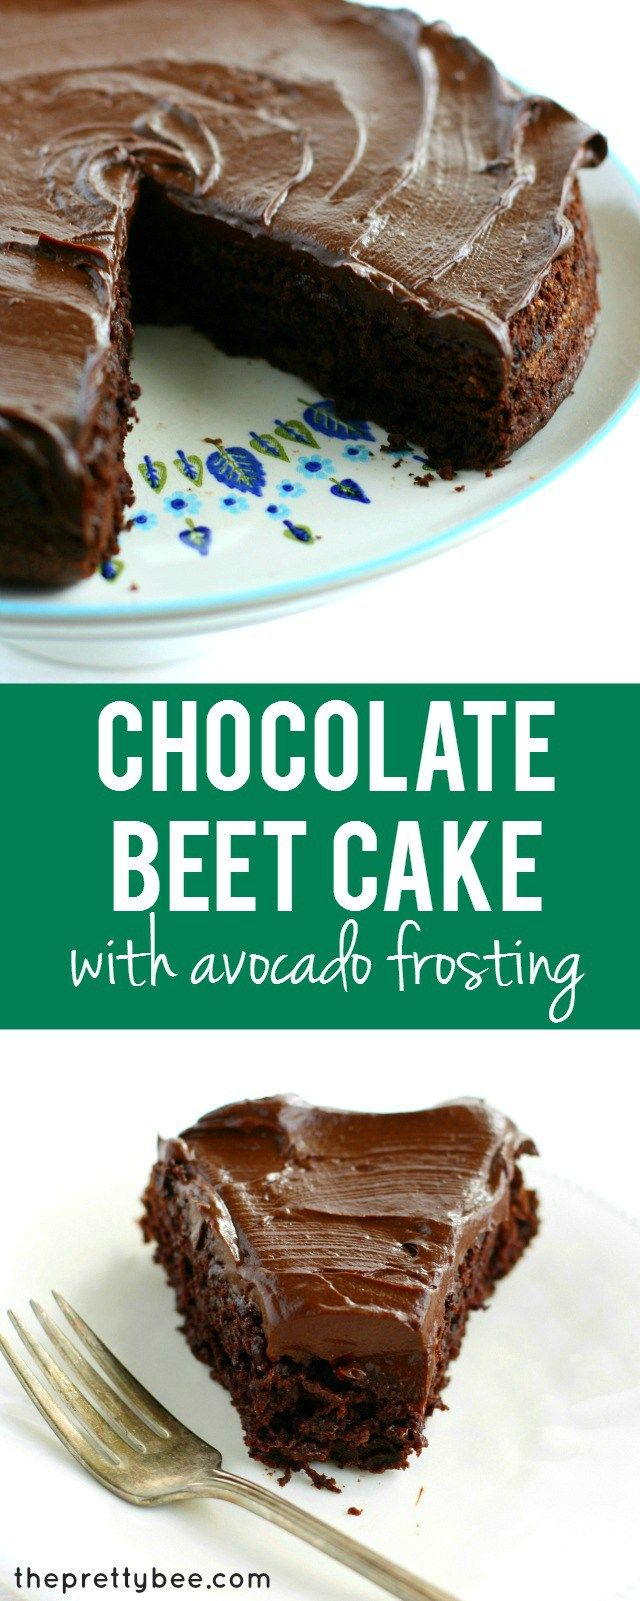 An easy recipe for chocolate beet cake with chocolate avocado frosting. It's not only incredibly delicious, it's also a healthier dessert choice! So yummy no one will ever guess it's healthy though! Gluten free, vegan, and free of the top 8 allergens!